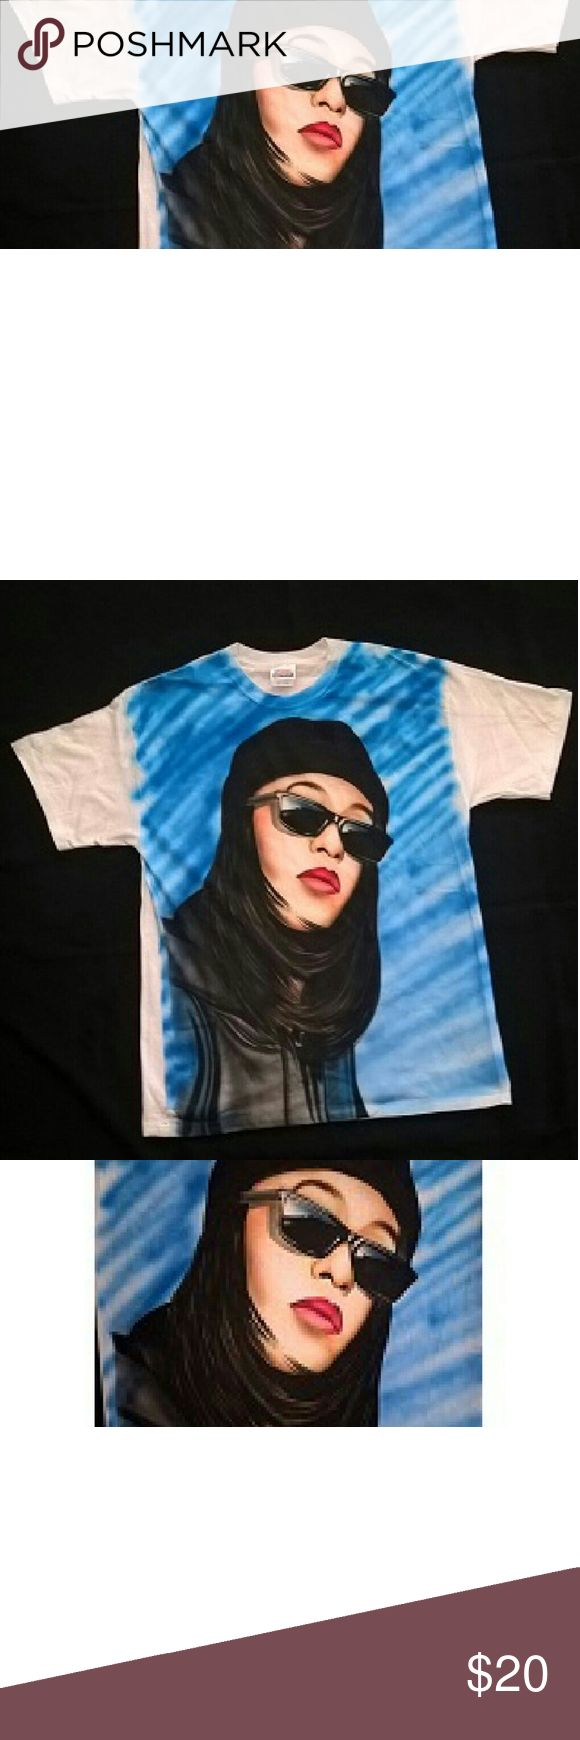 Aaliyah airbrushed tshirt This is an airbrush tshirt of the late singer Aaliyah hand painted on a white tshirt, This was a shirt I painted for display and has never been worn,  the tshirt is a regular men's size large tshirt Hanes Tops Tees - Short Sleeve